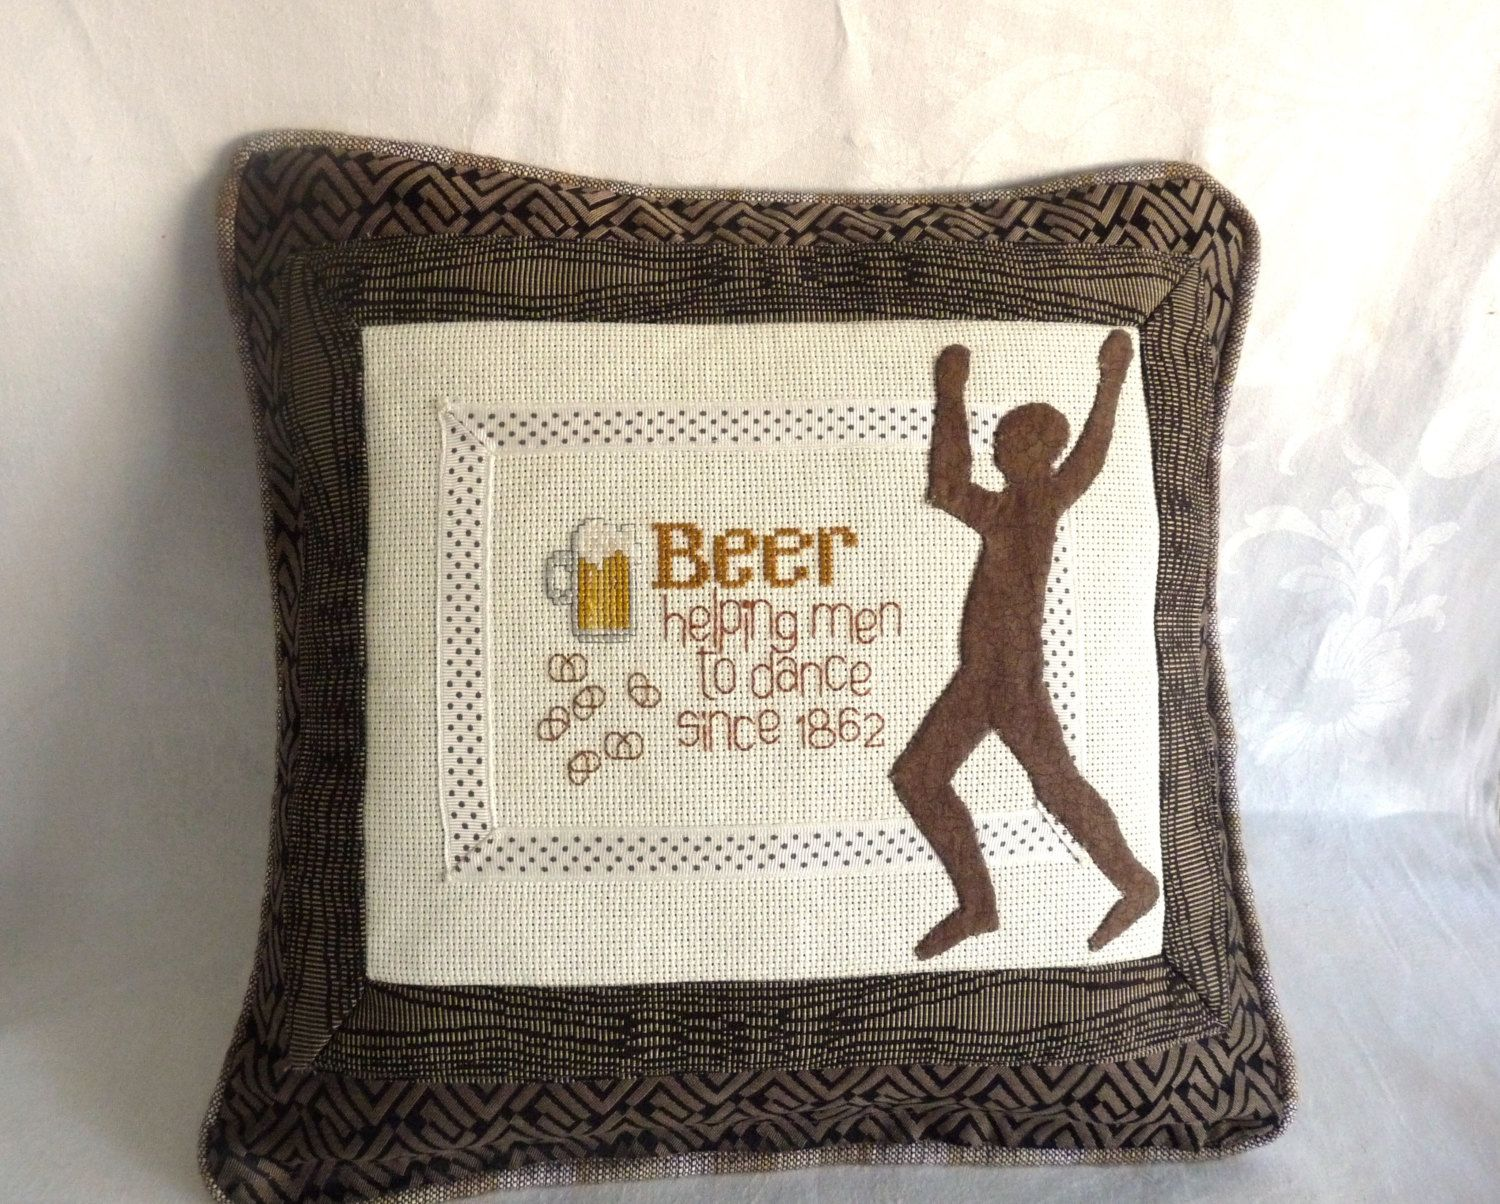 Dancing Man Pillow by L7wisconsin on Etsy https://www.etsy.com/listing/170950814/dancing-man-pillow